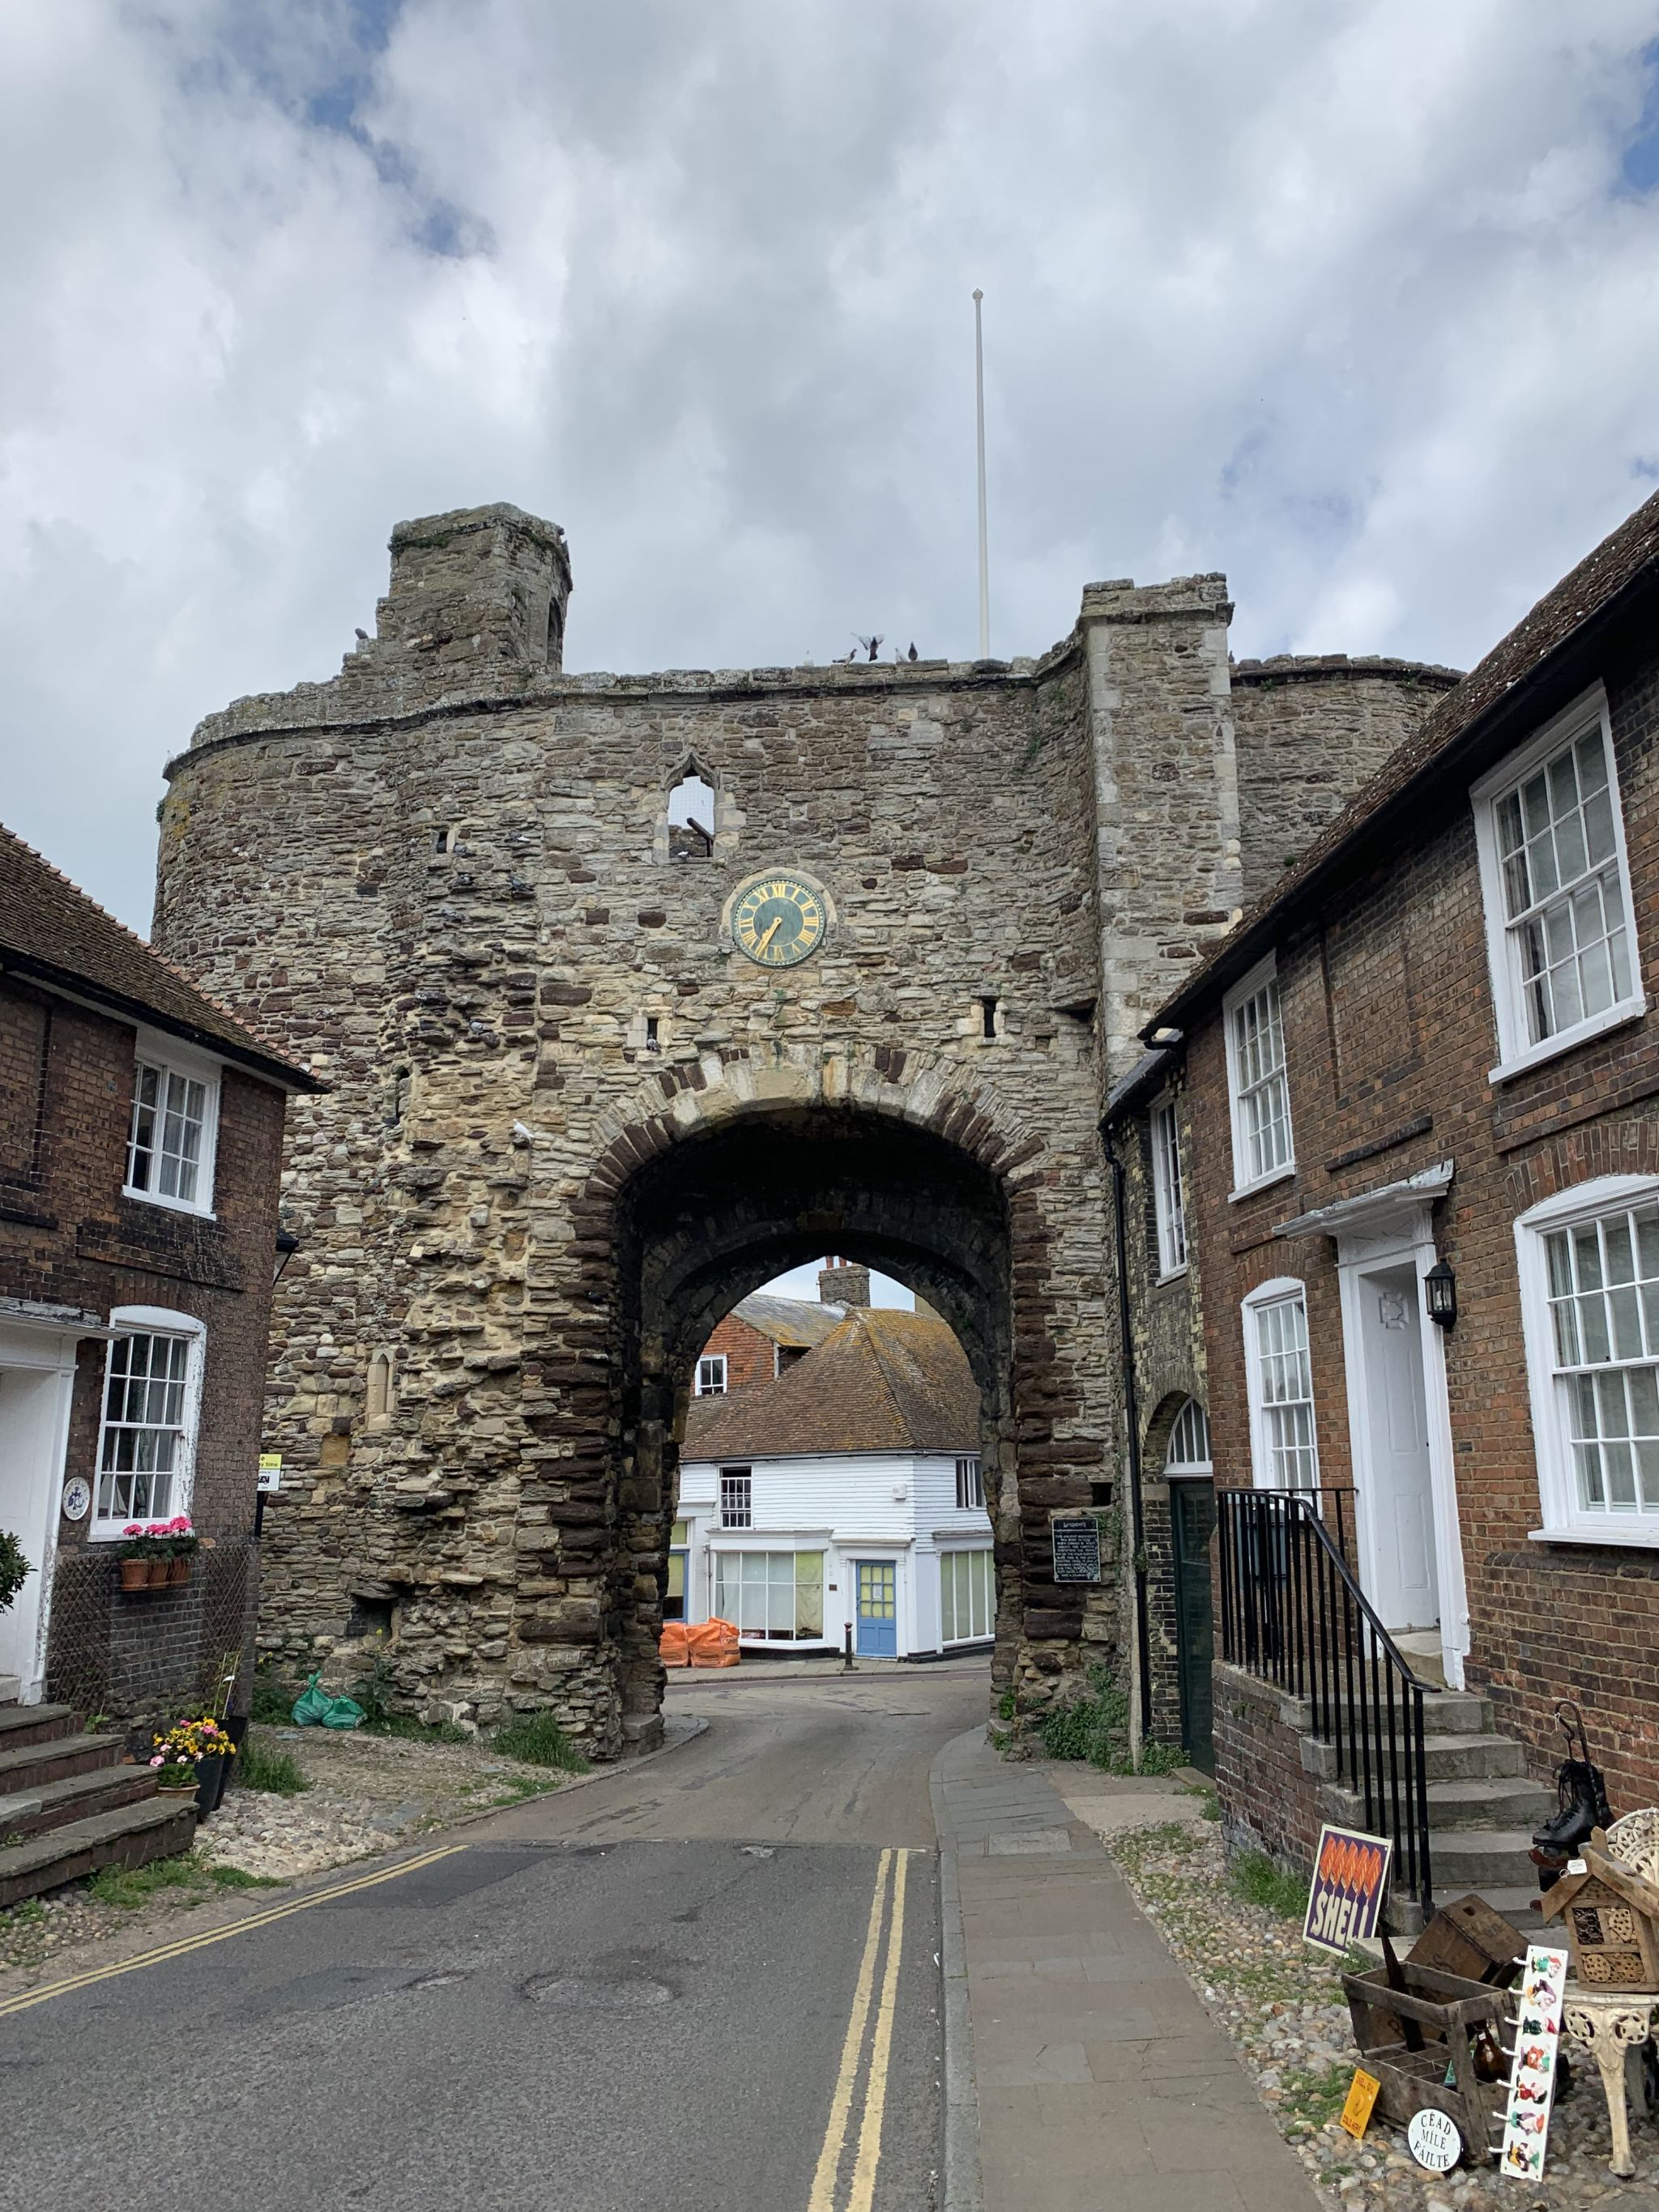 The Landgate Monument rye